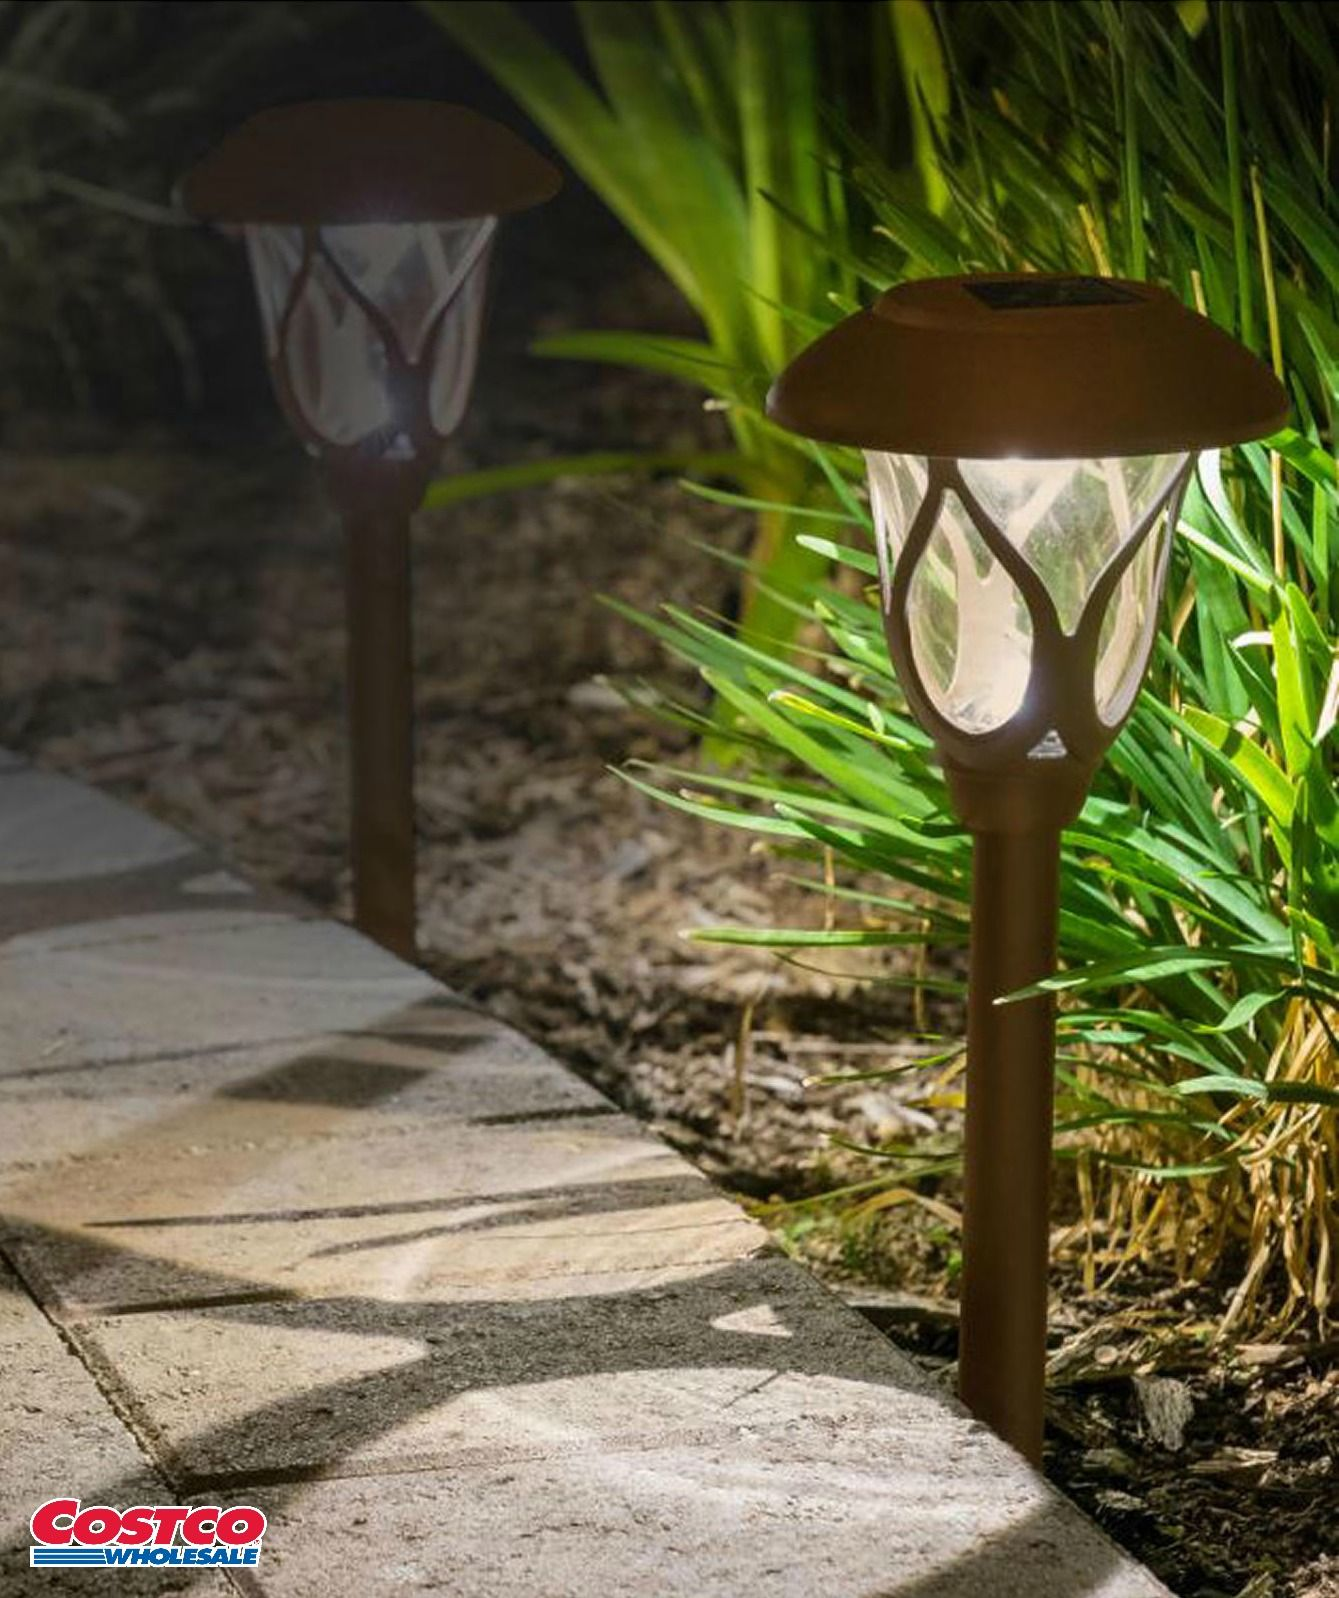 Smartyard Small Led Pathway Lights 6 Pack Outdoor Patio